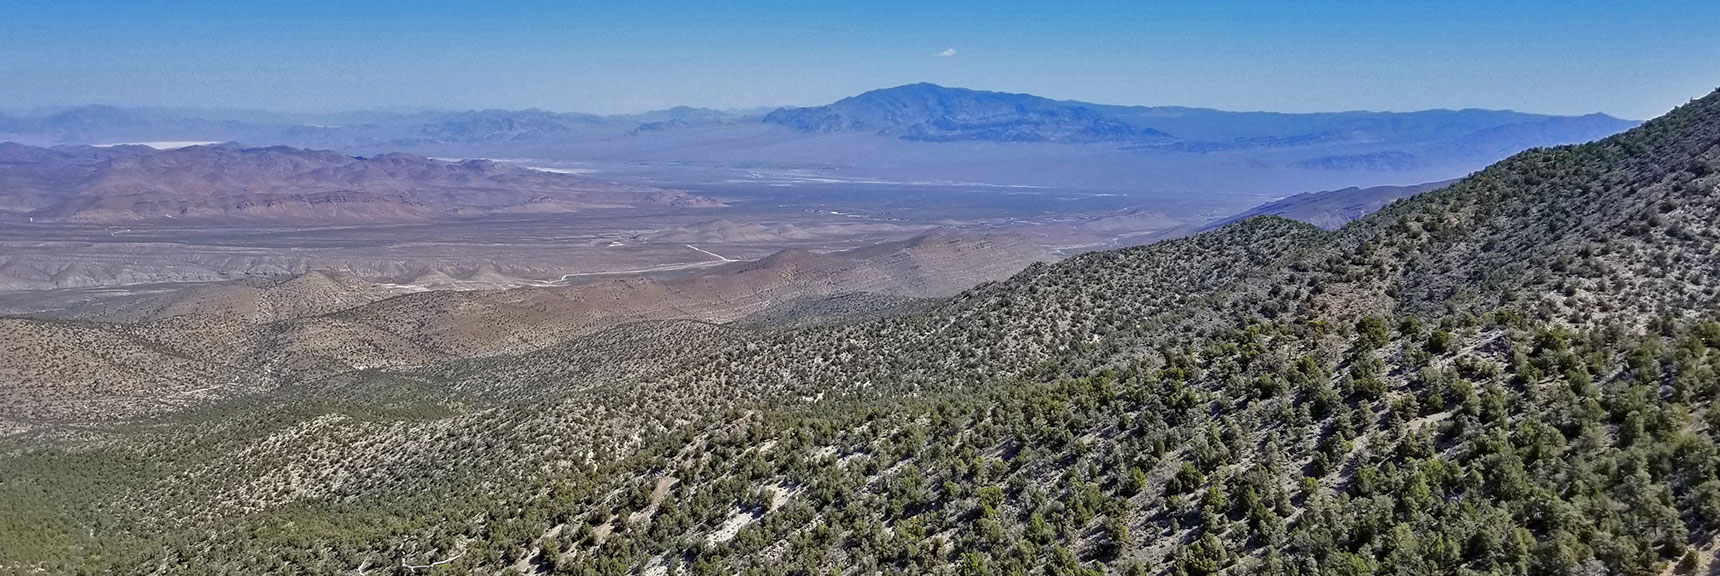 Sheep Range from Just West of El Padre Mountain, La Madre Mountains Wilderness, Nevada